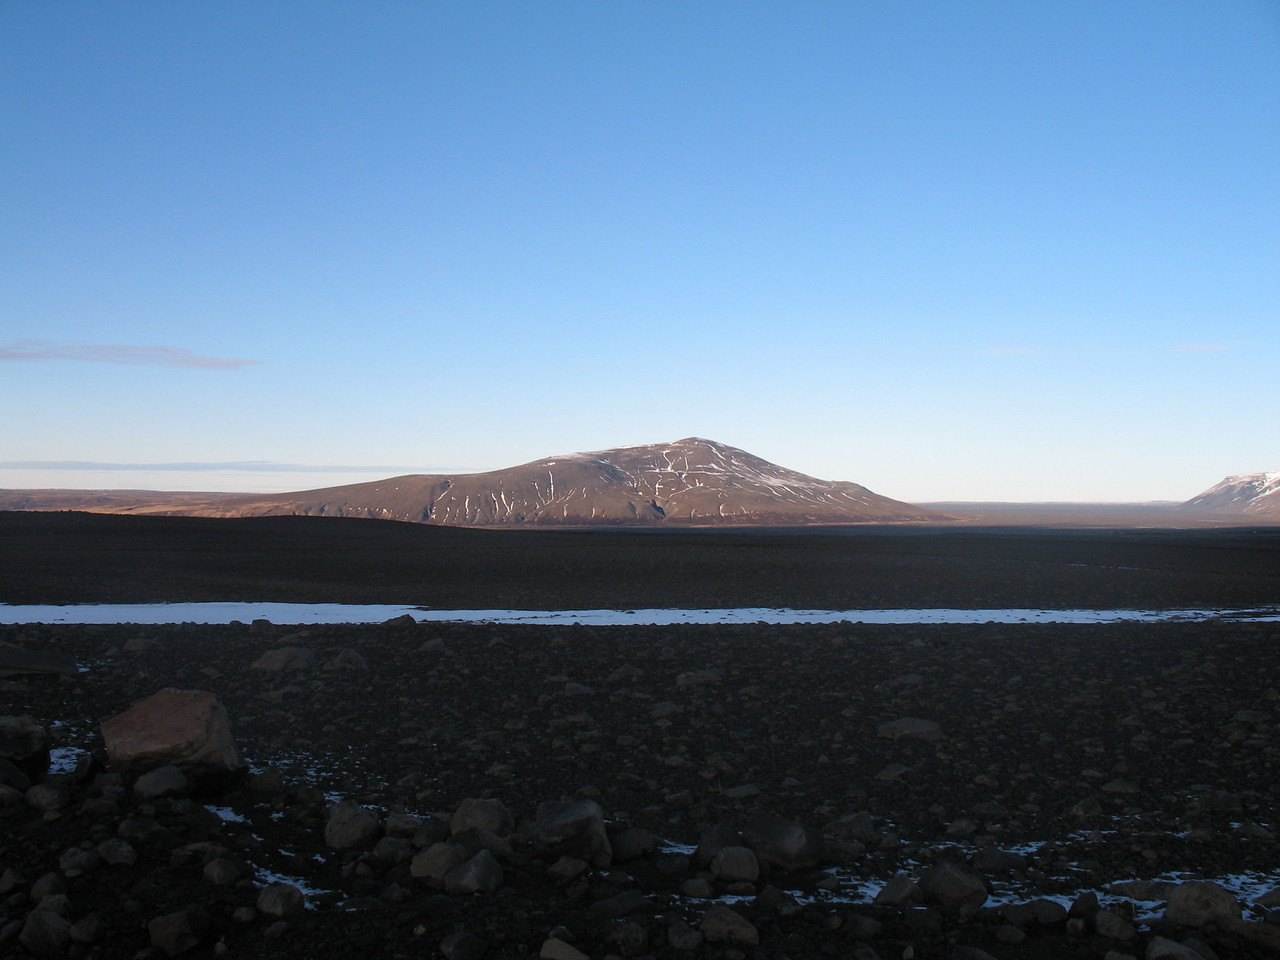 Strútur viewed from the Kaldidalur mountain road.